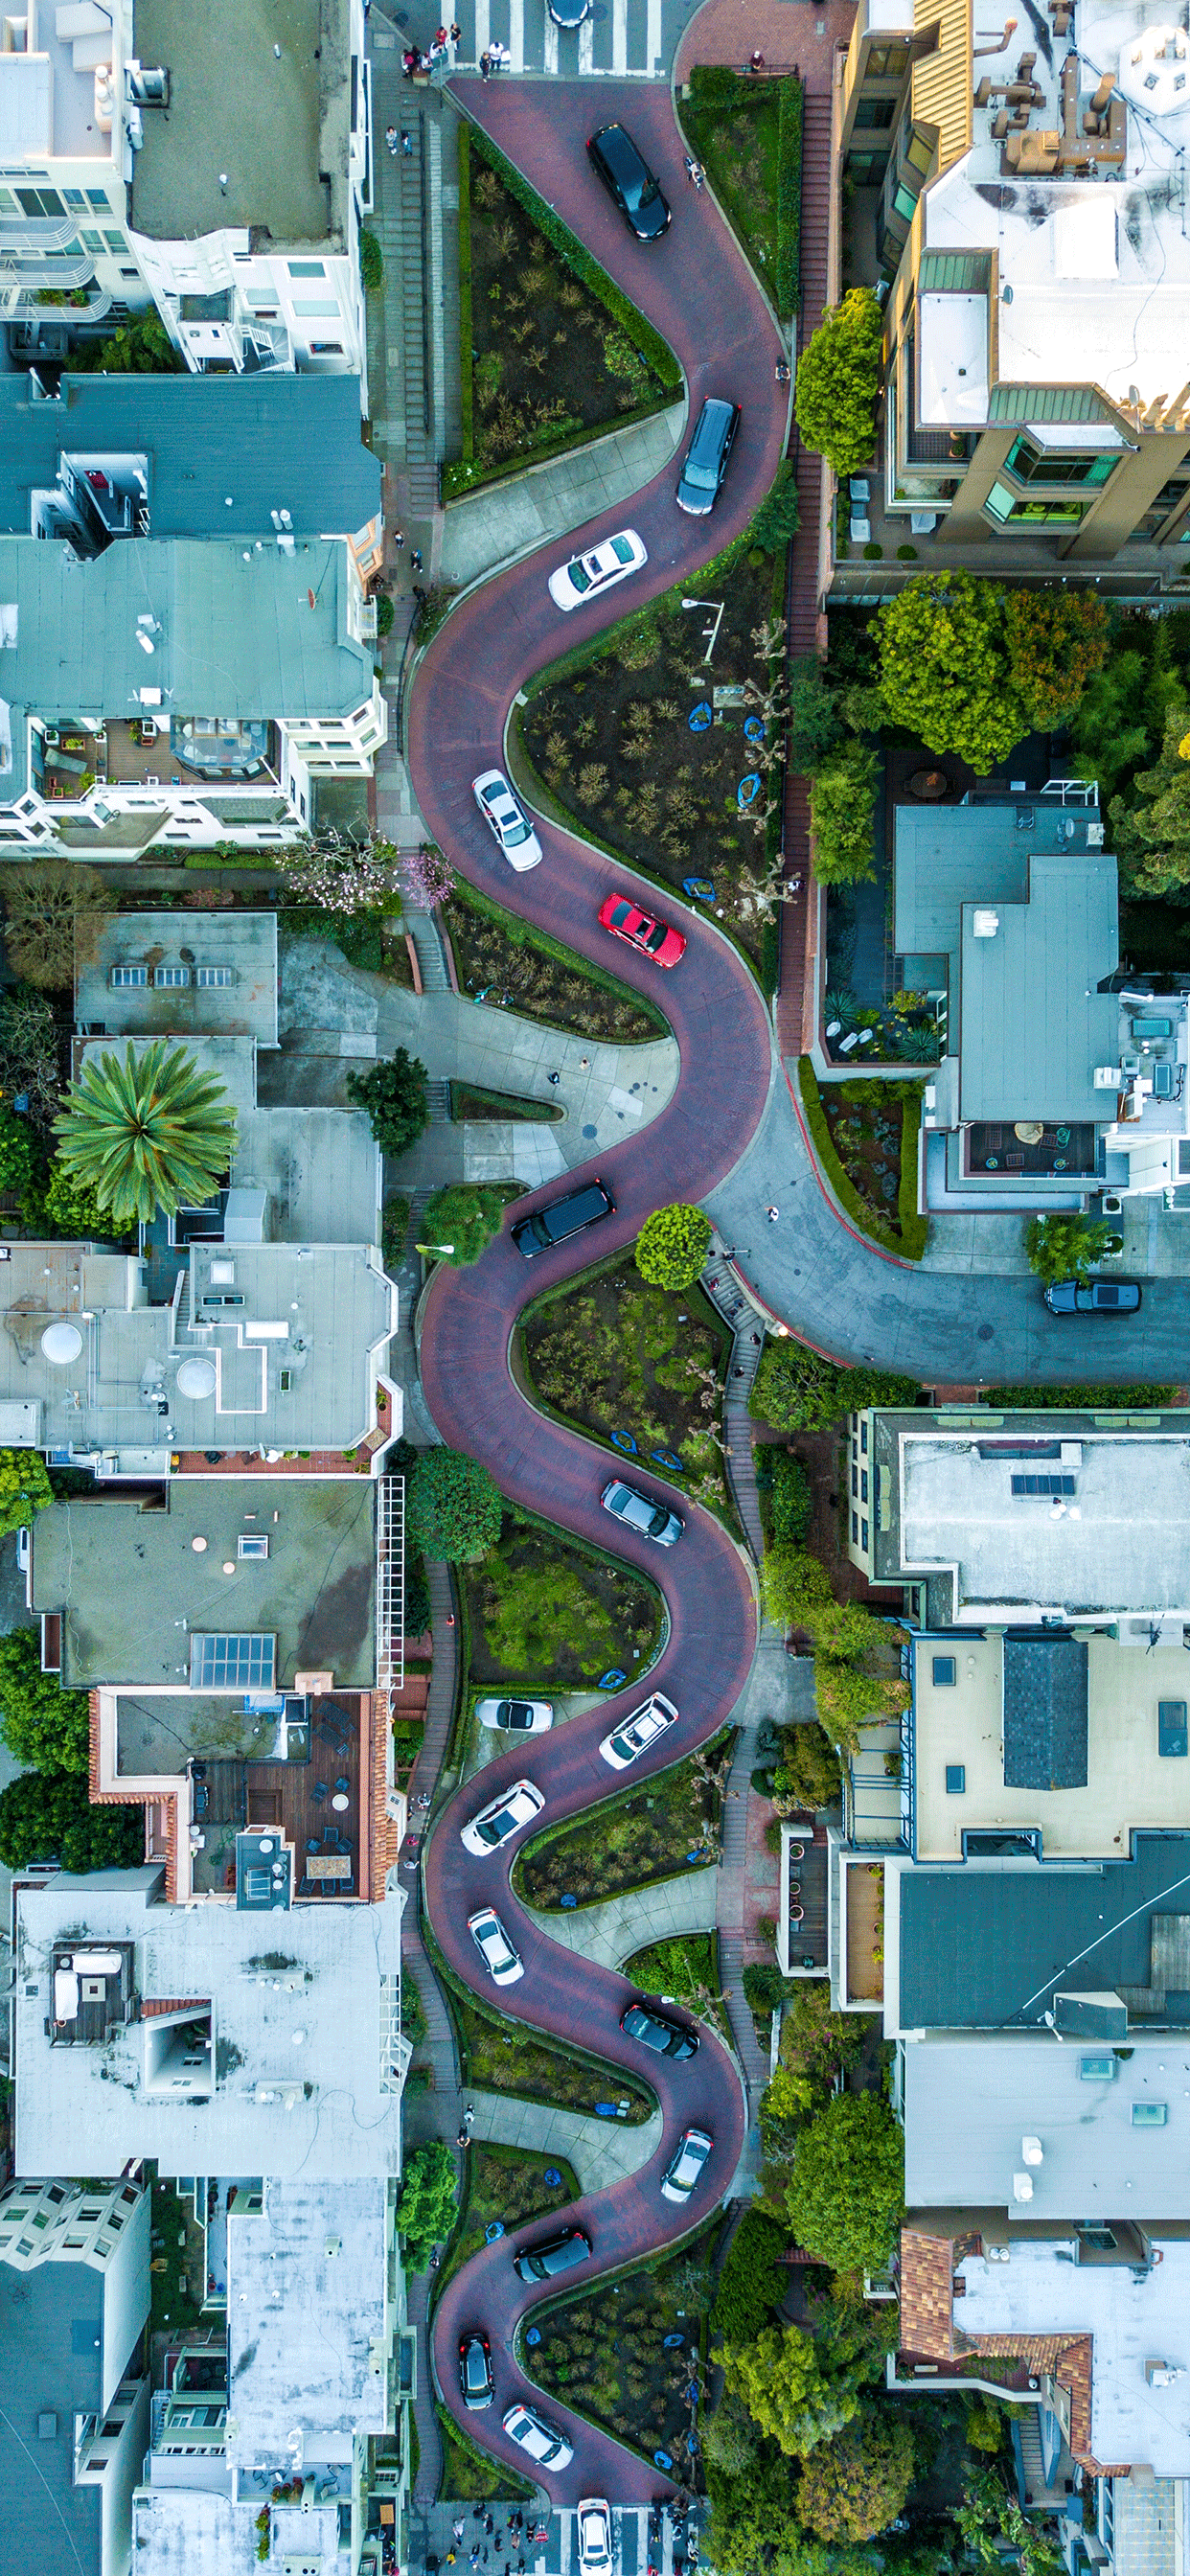 iPhone wallpaper aerial images san francisco Fonds d'écran iPhone du 01/04/2019